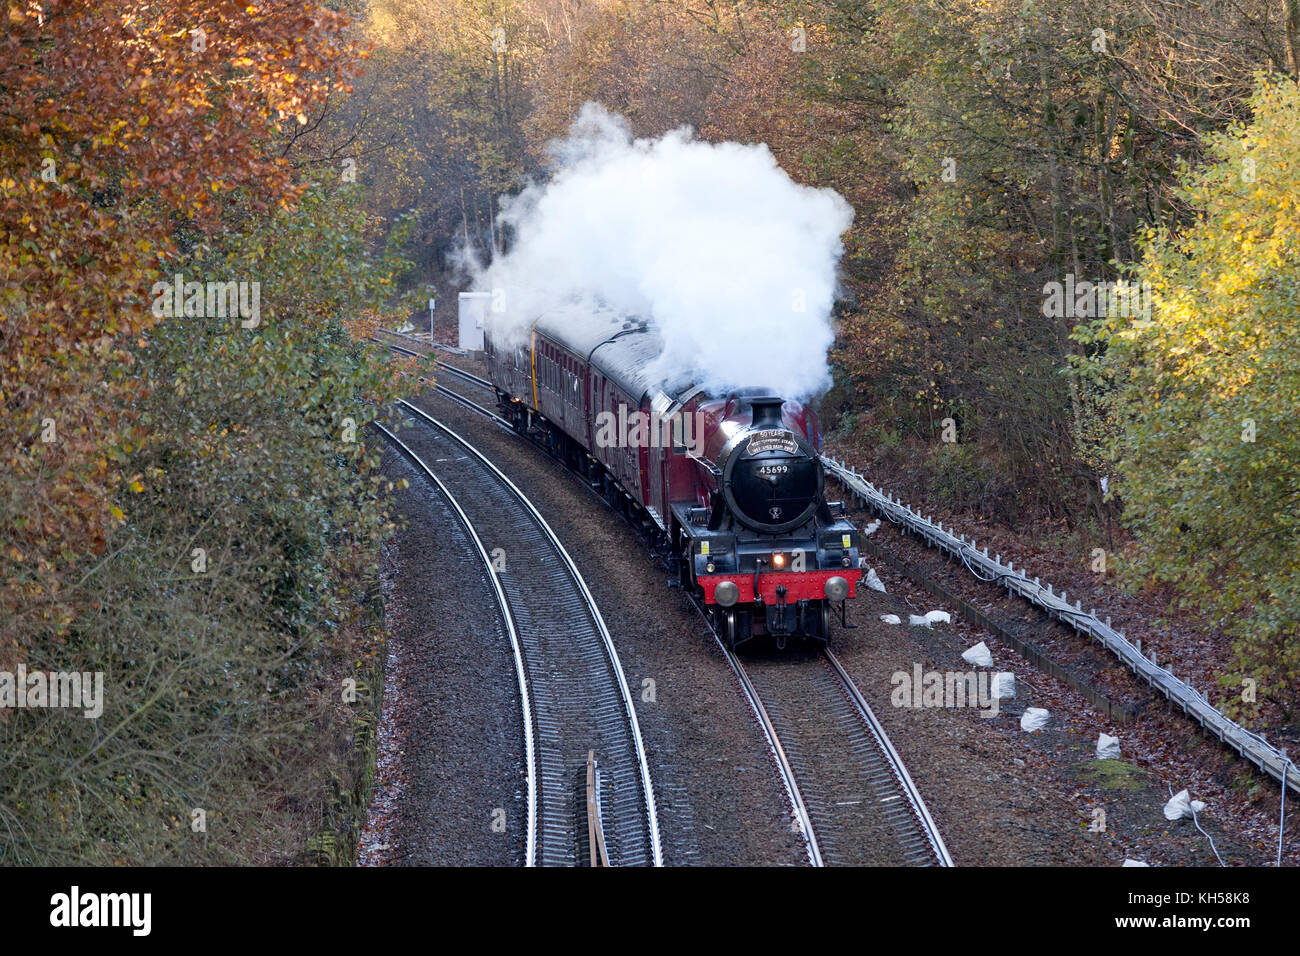 Jubilee Class locomotive 45699 'Galatea' passing Sowerby Bridge on the Calder Valley with a special excursion, - Stock Image